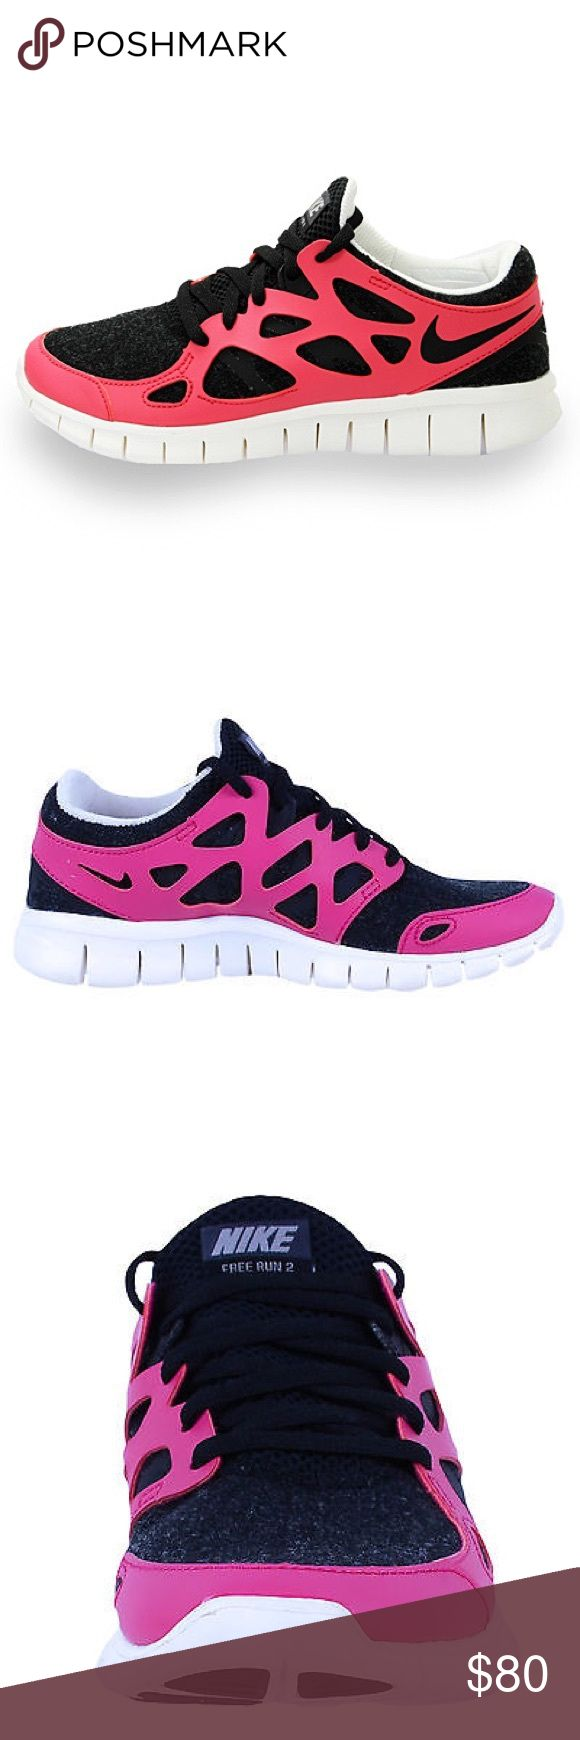 Nike Free Run 2 Pink and black Nike Free Run 2. EXTREMELY comfortable and stretchy shoes. Definitely worth the buy! Nike Shoes Athletic Shoes